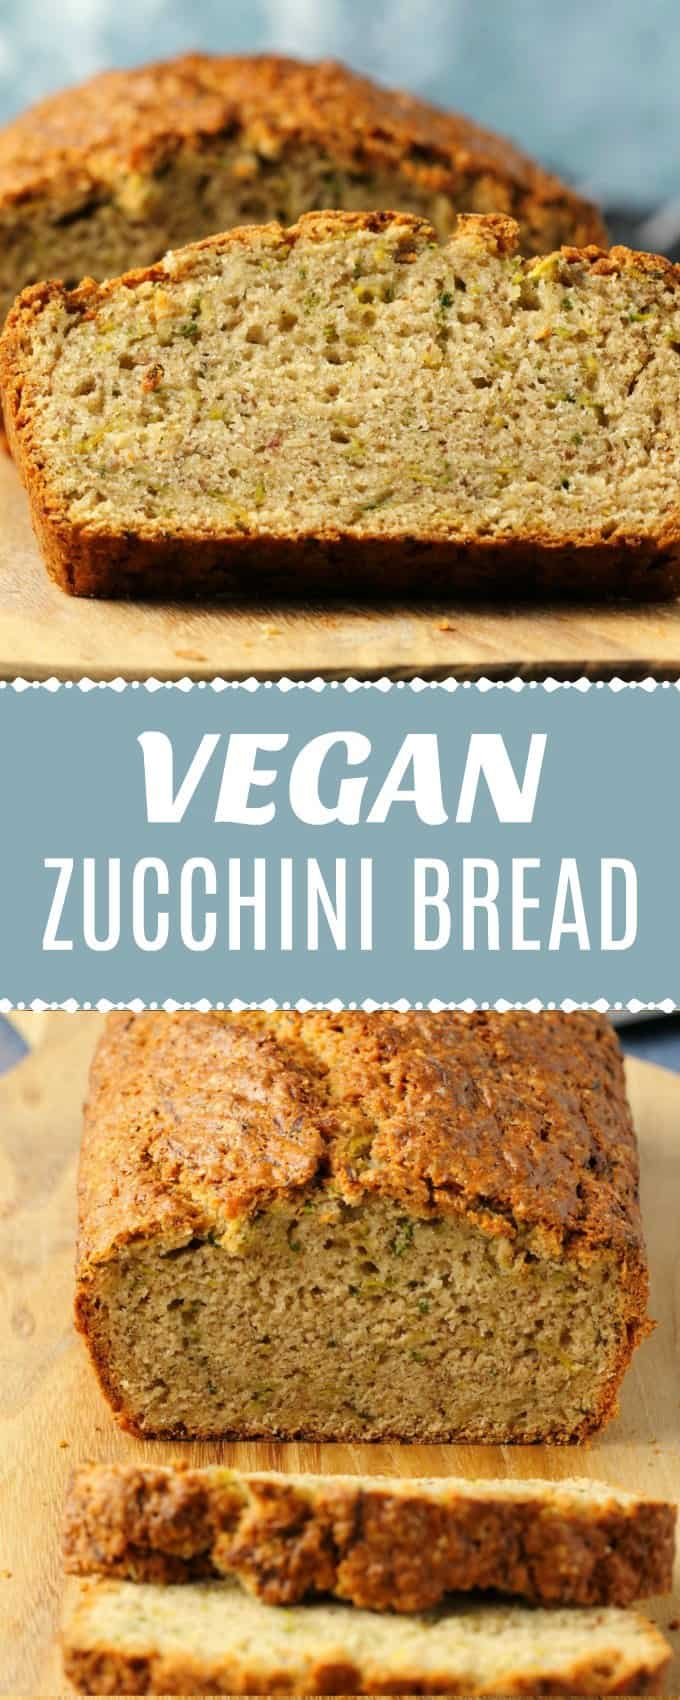 Wholesome and delicious vegan zucchini bread. Fluffy and perfectly moist you'll never suspect this delicious bread is hiding green vegetables!| lovingitvegan.com